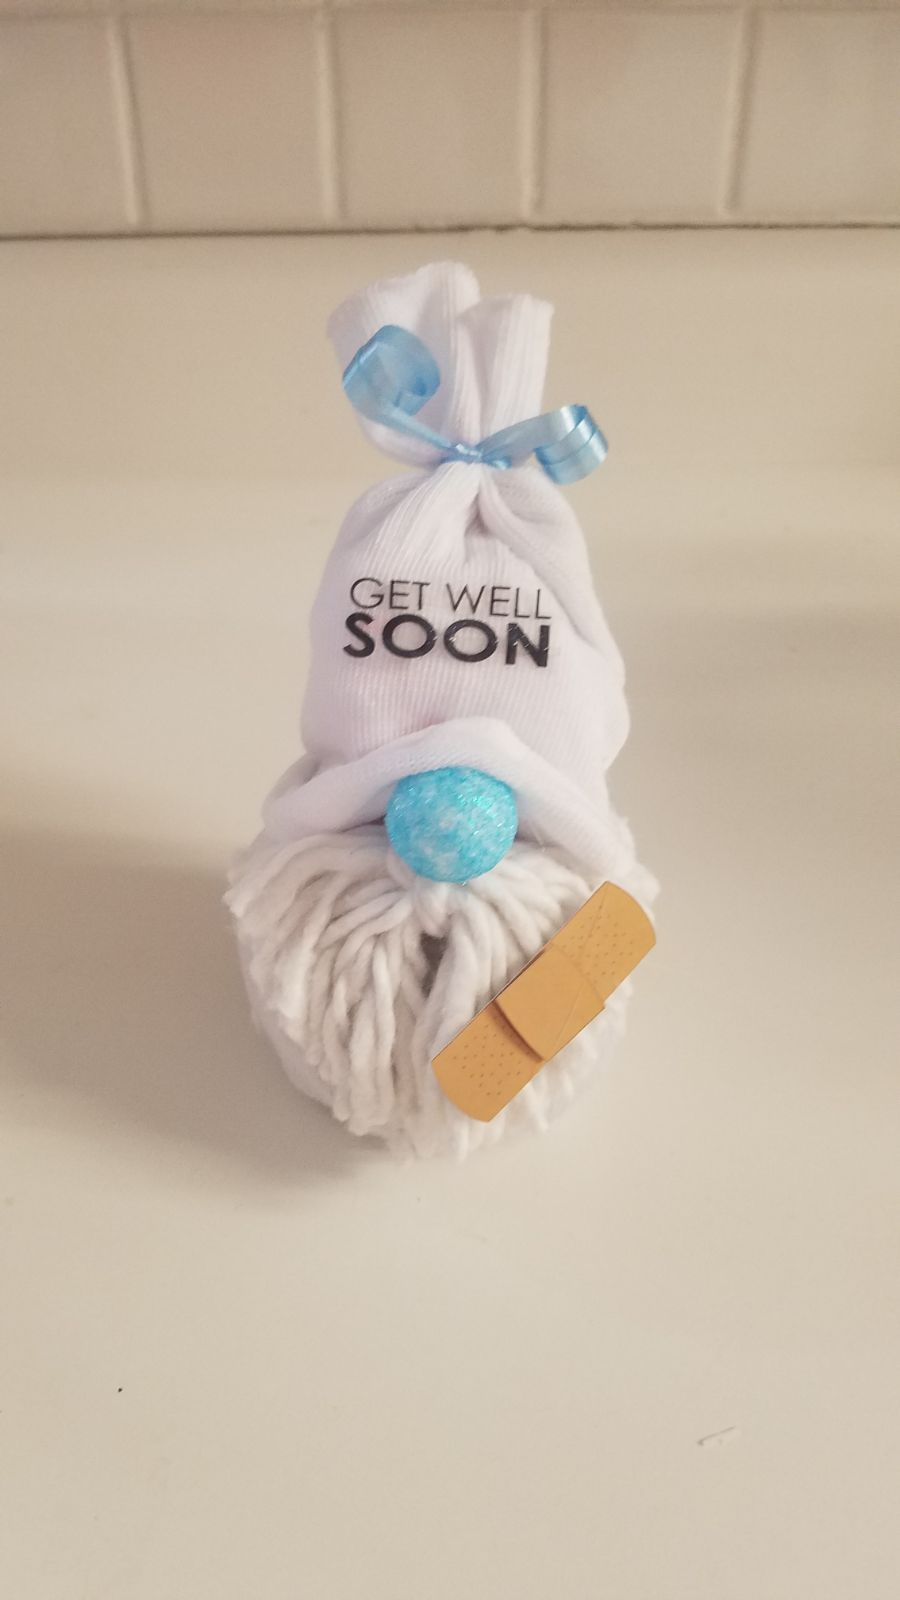 Get well soon Gnome